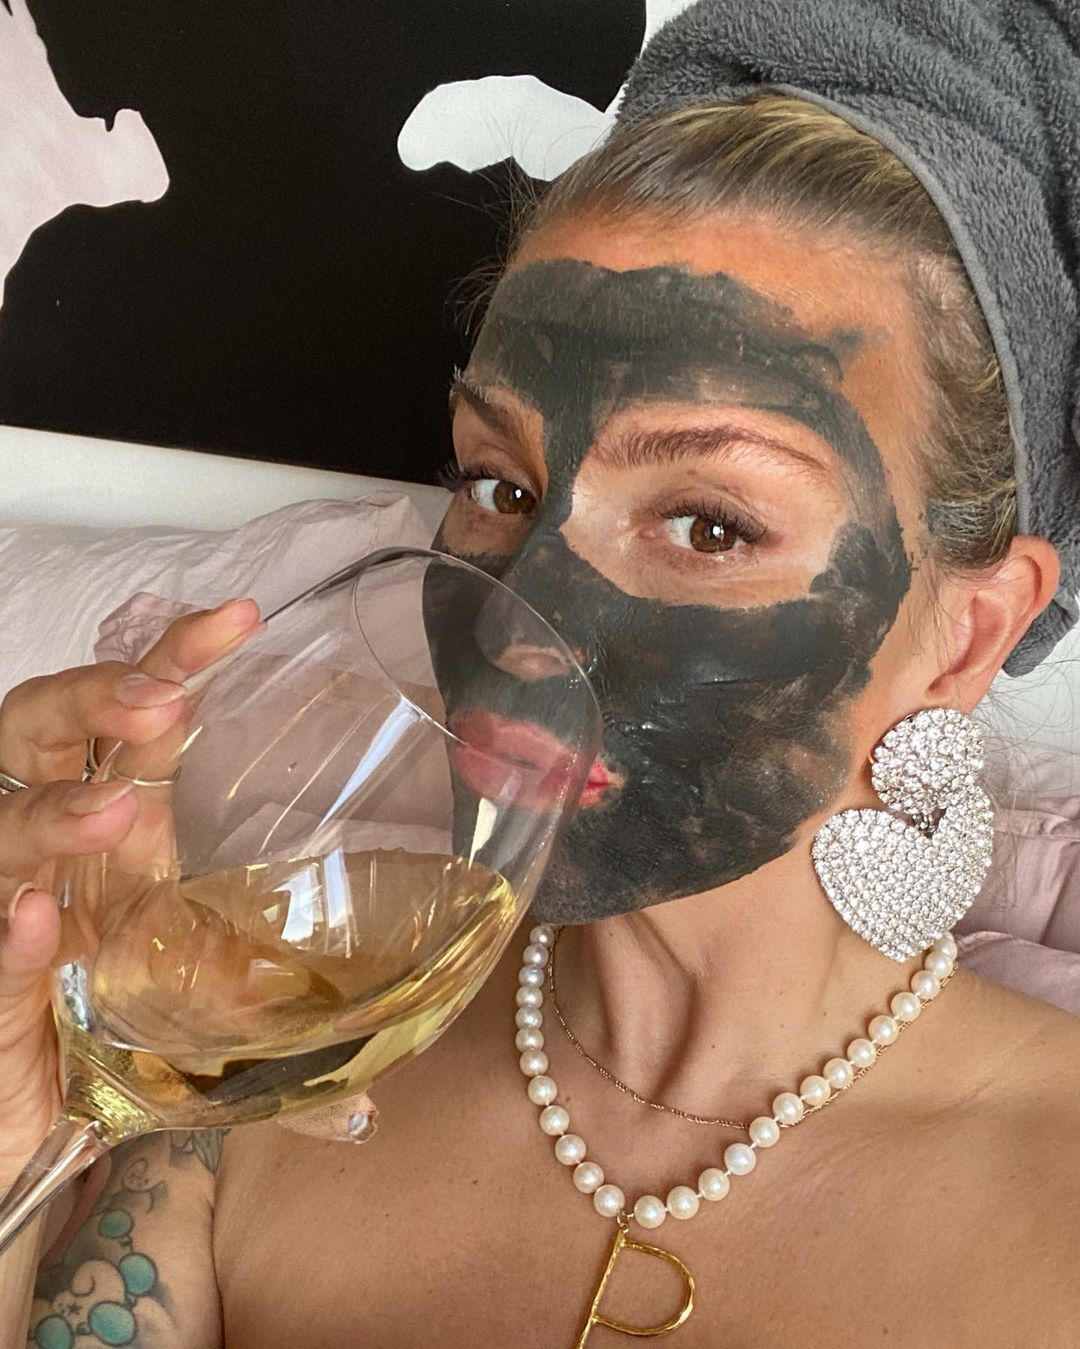 janka-polliani-clay-detox-face-mask-instagram